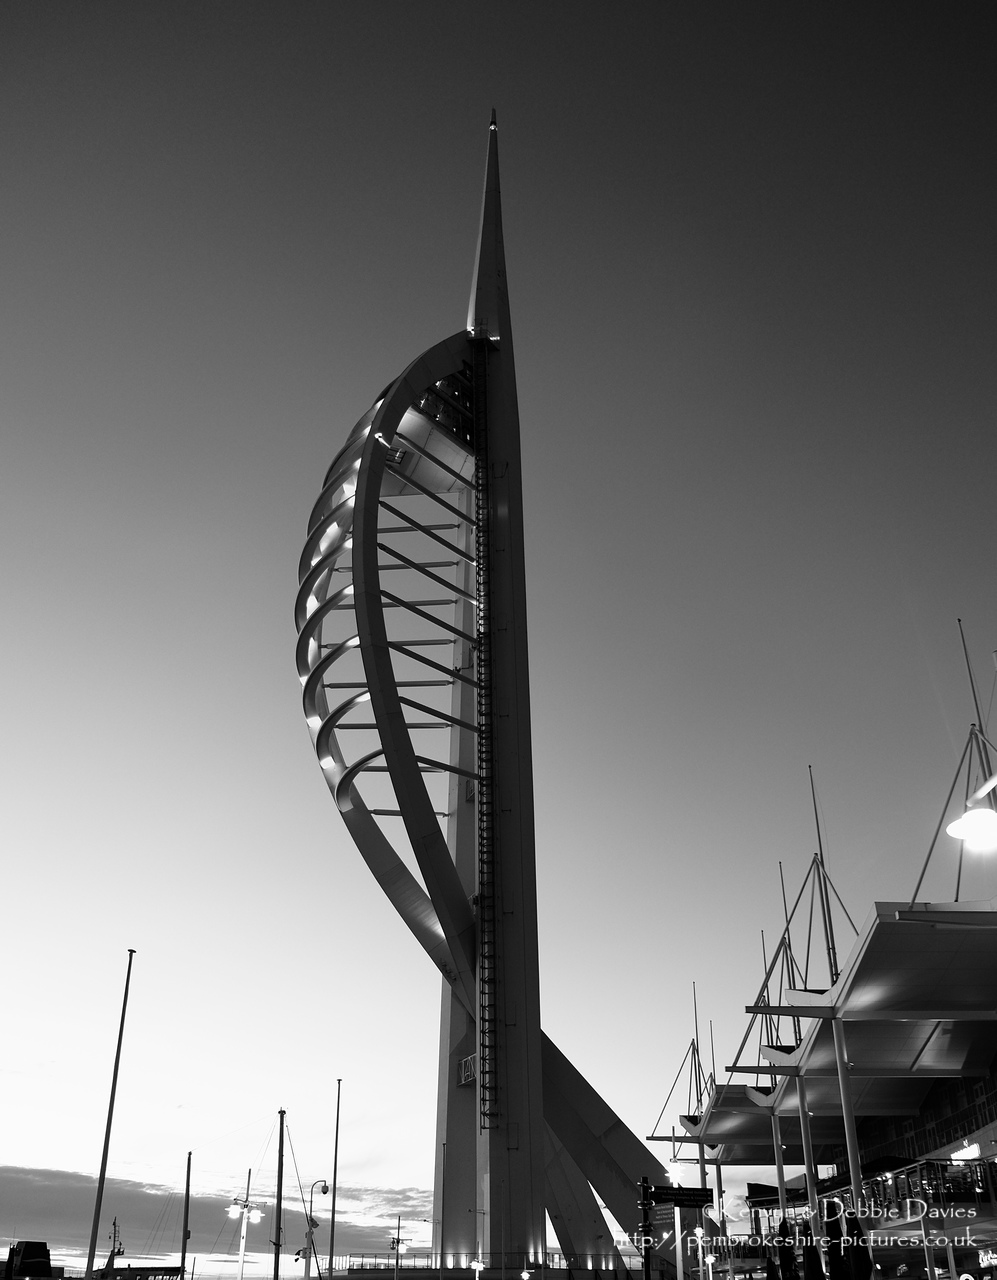 Standing at 560ft (170m) The Spinnaker is the highest human built and accessible point in Britain outside London.